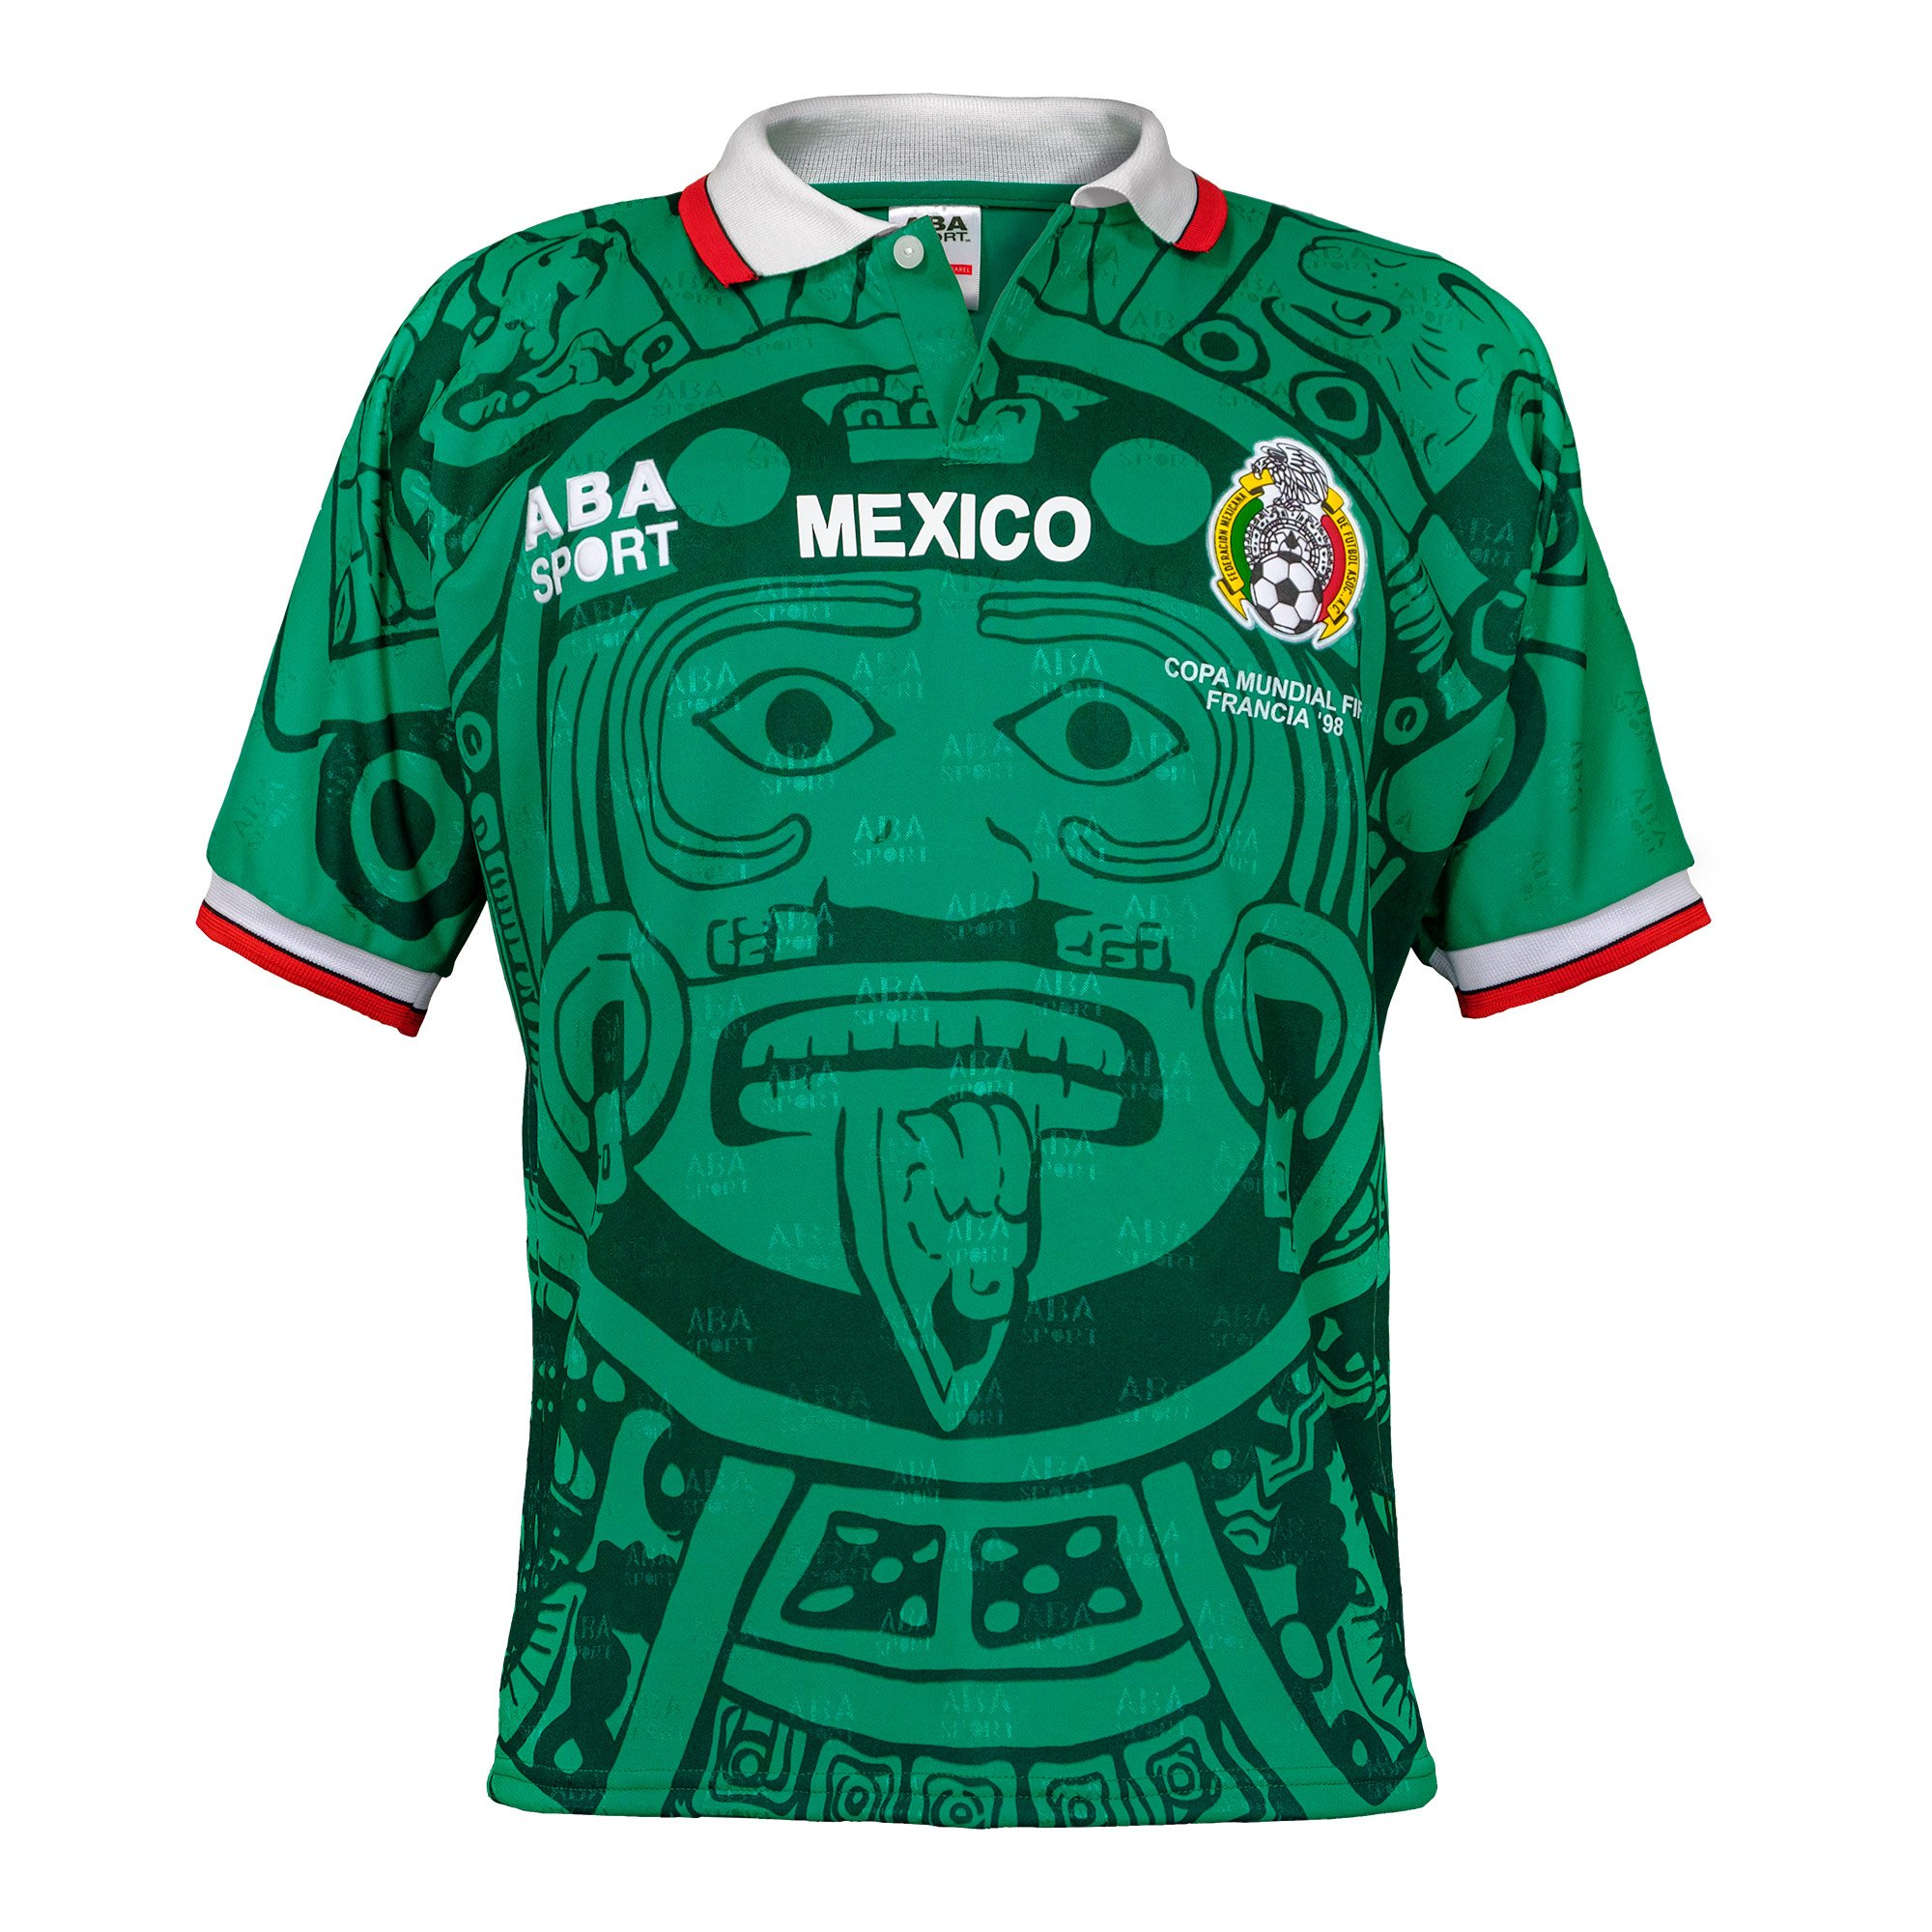 376c0a264 Amazon.com  ABA Sport Mexico Authentic 1998 World Cup Soccer Jersey   Clothing